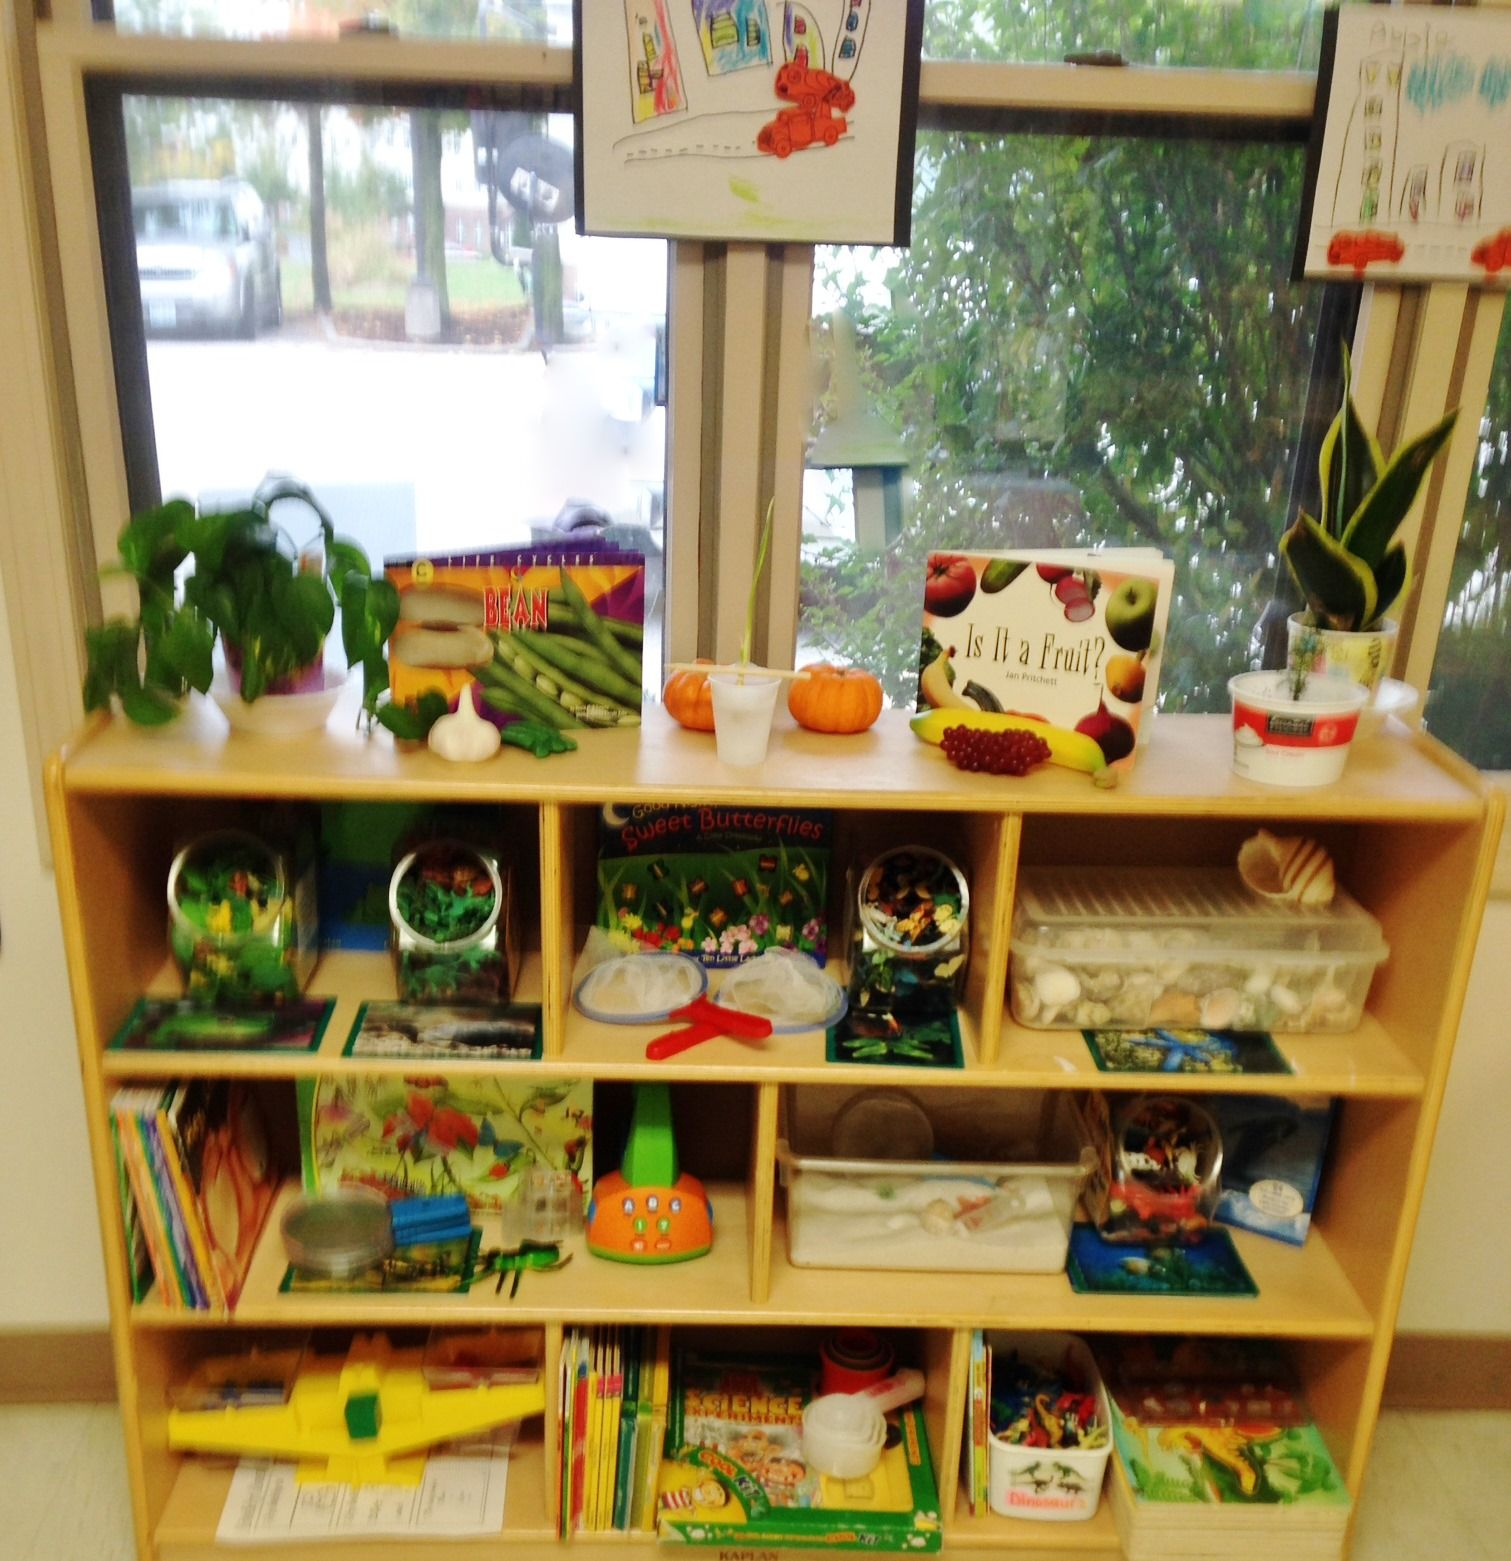 Science Classroom Design Ideas: Great Looking Science Center With Plants, Books And